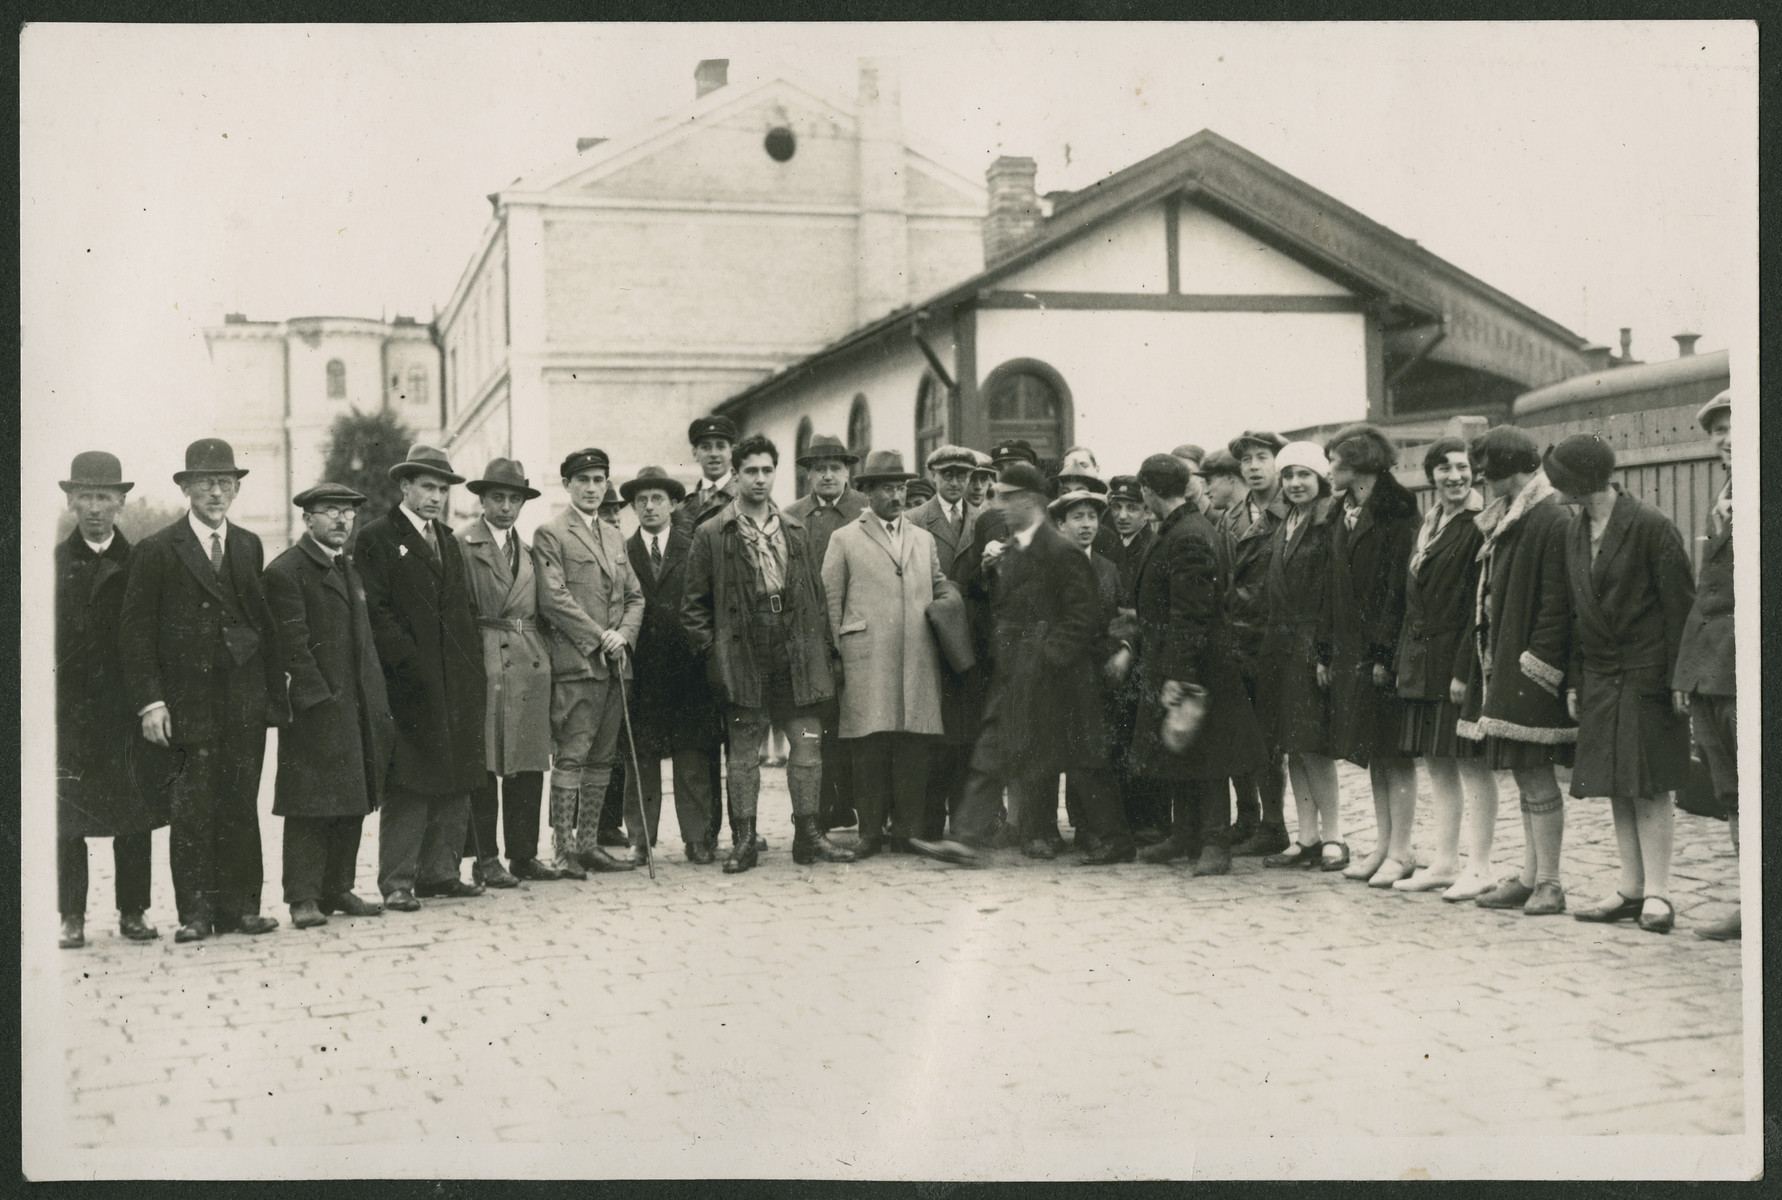 Group portrait of Zionist activists either in Latvia or Lithuania.